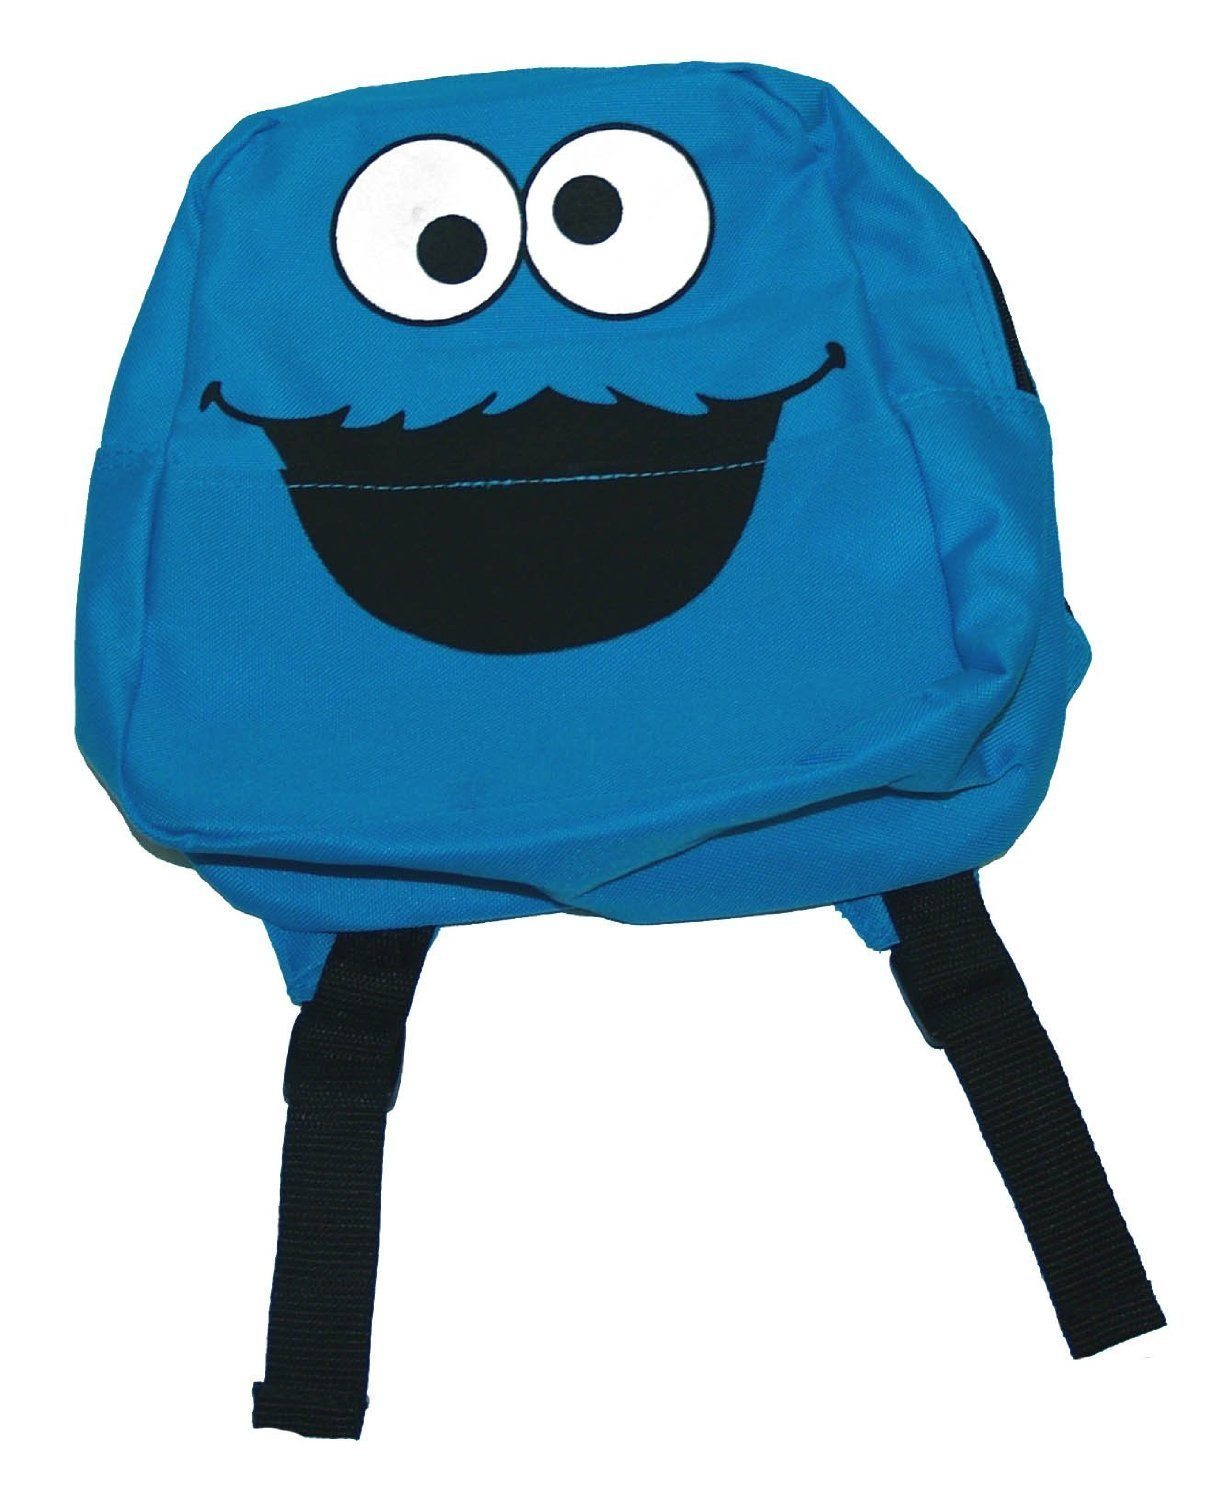 cookie monster chair oxo seedling high replacement cover kids 39 furniture décor and storage